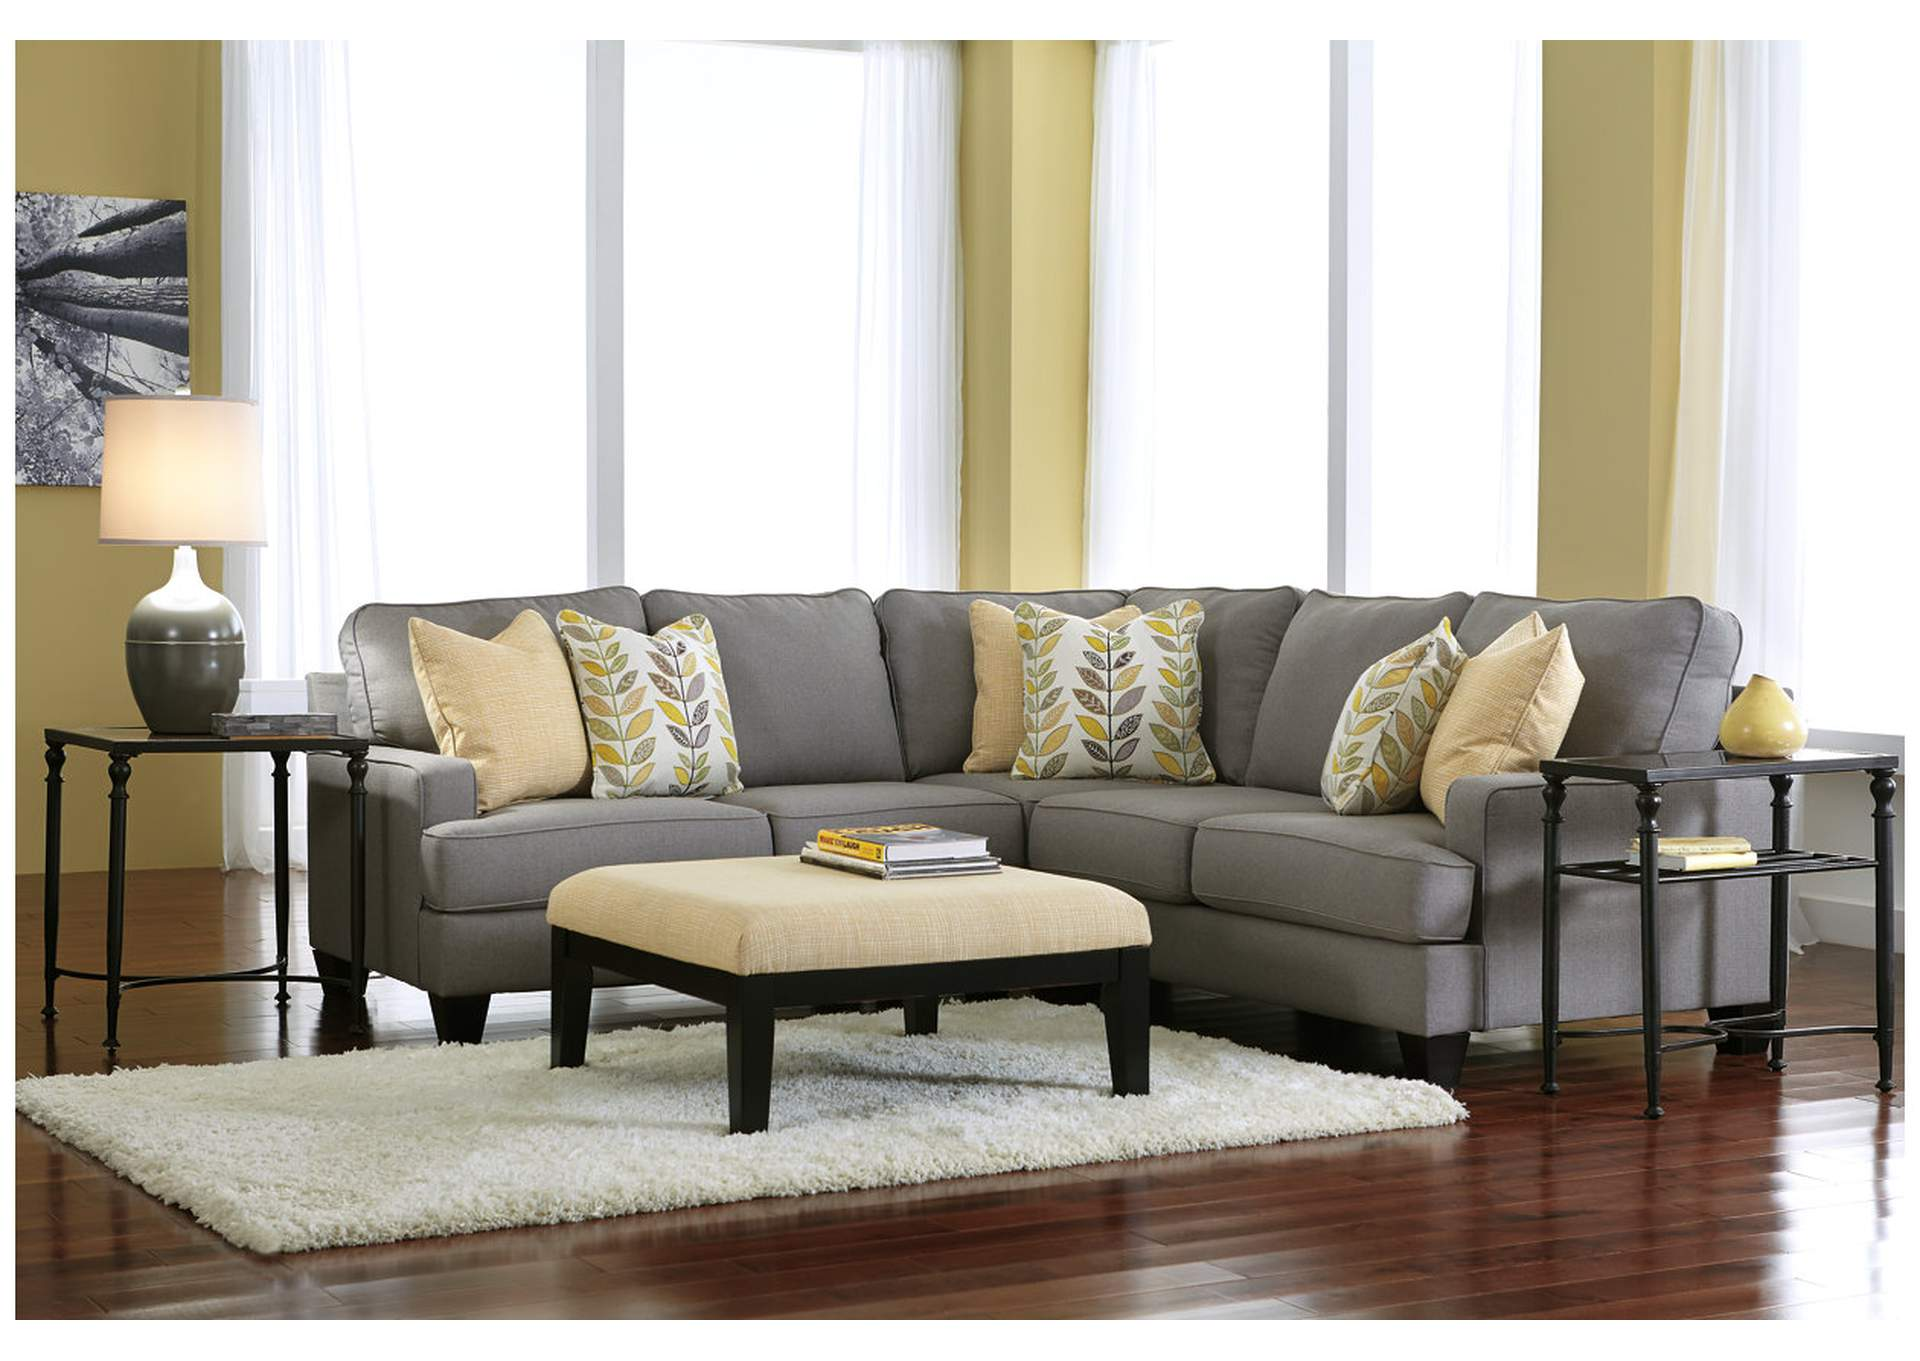 Jennifer Convertibles Sofas Sofa Beds Bedrooms Dining Rooms More Chamberly Alloy Sectional